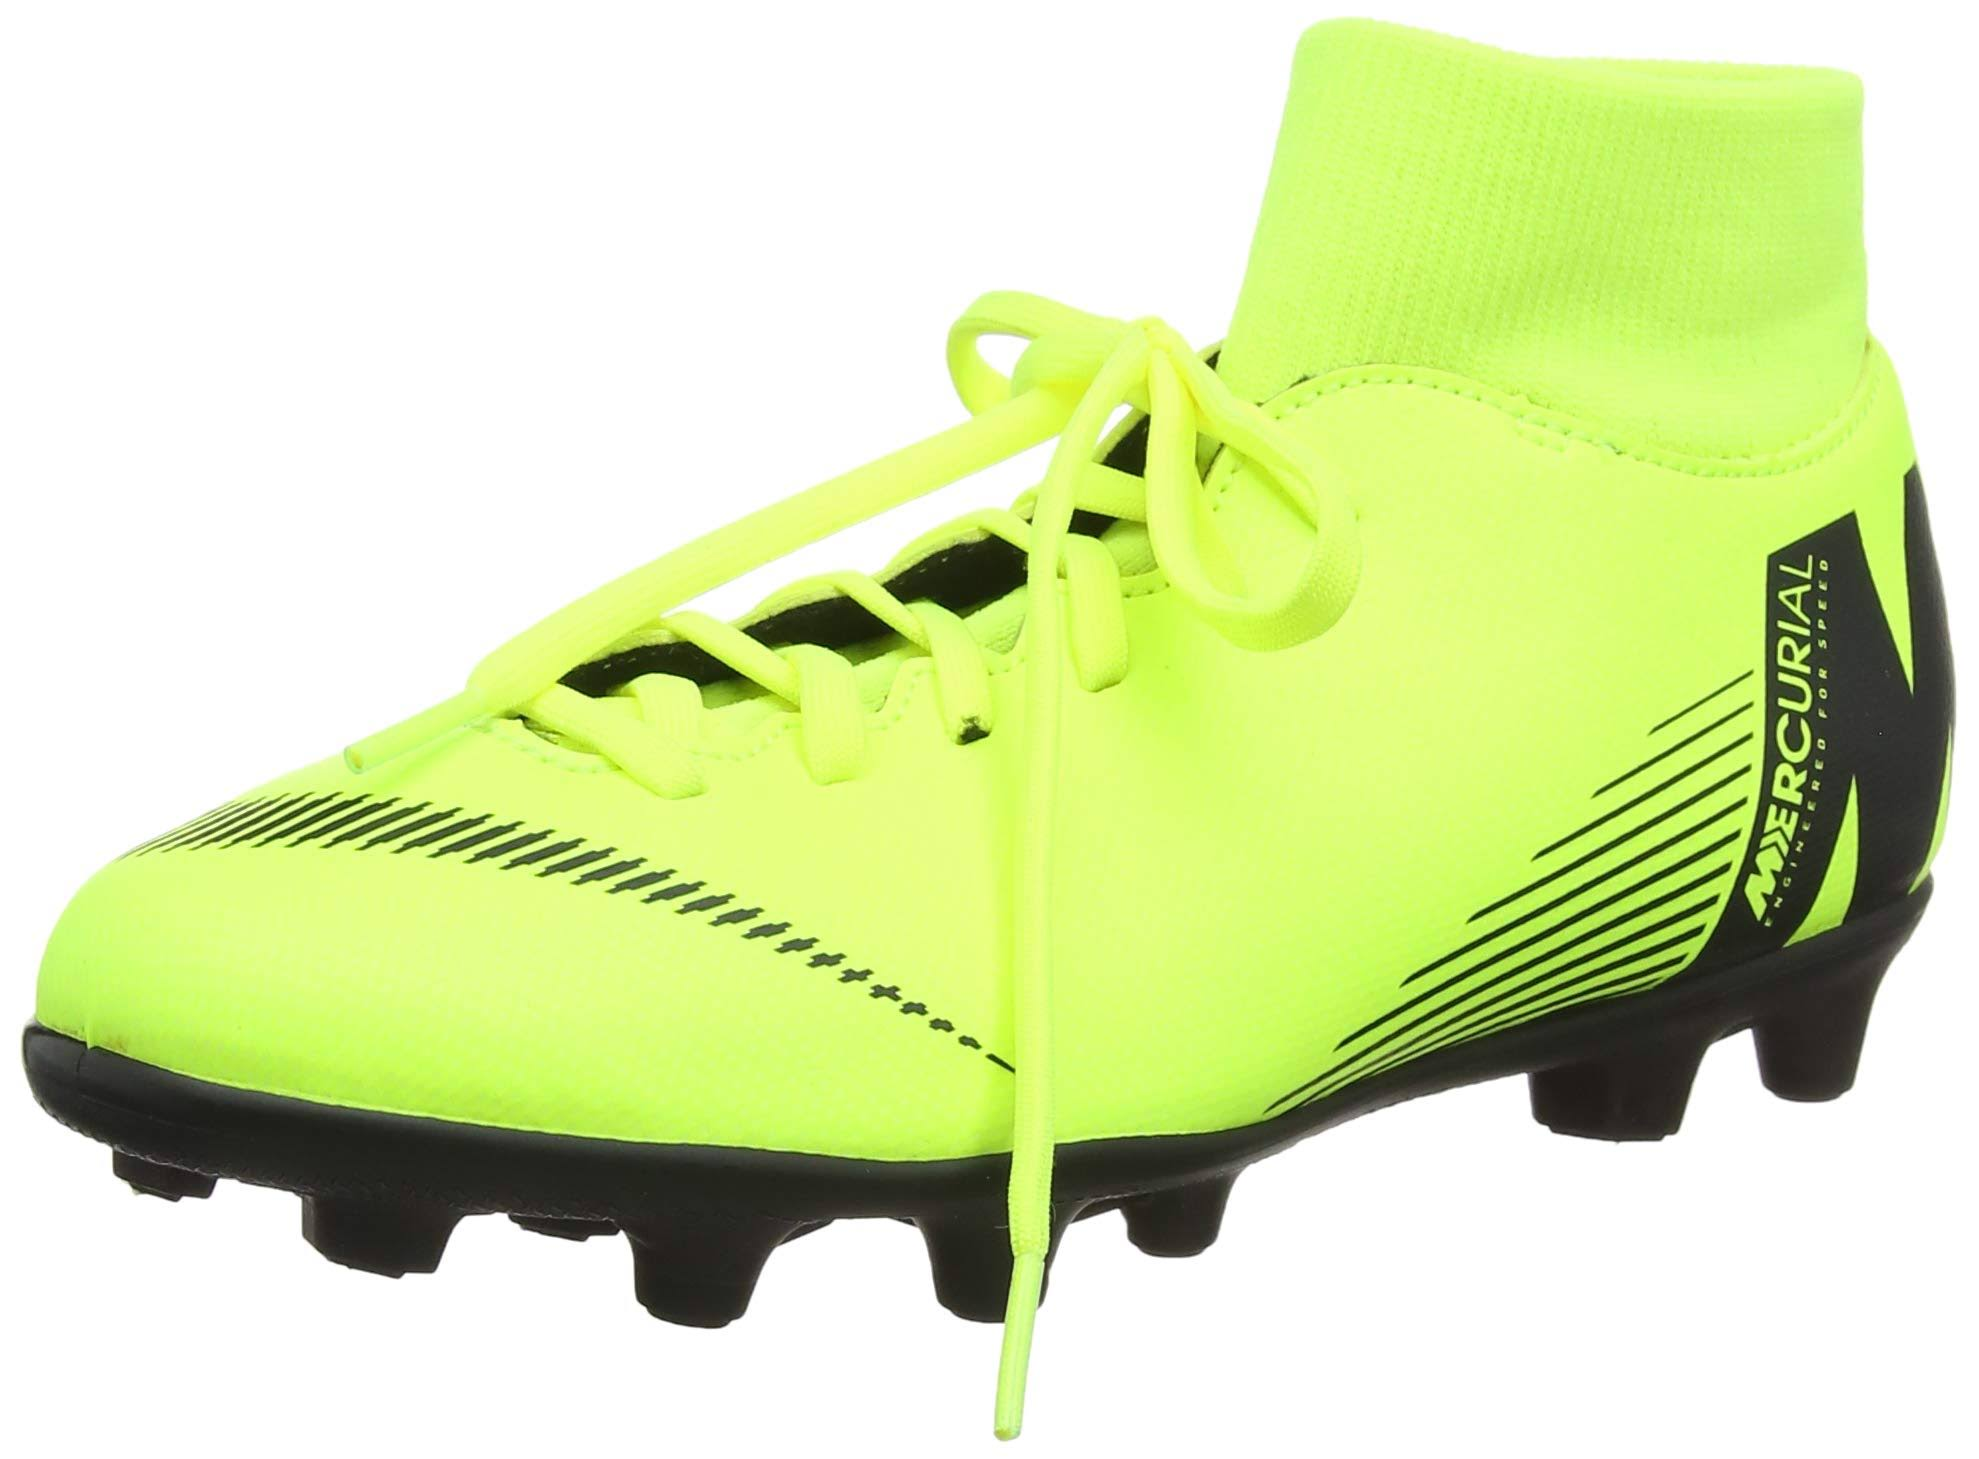 Amarillo Fg Club Mercurial Vi Black Superfly Volt Drk Nike Mg qxB6Pqw